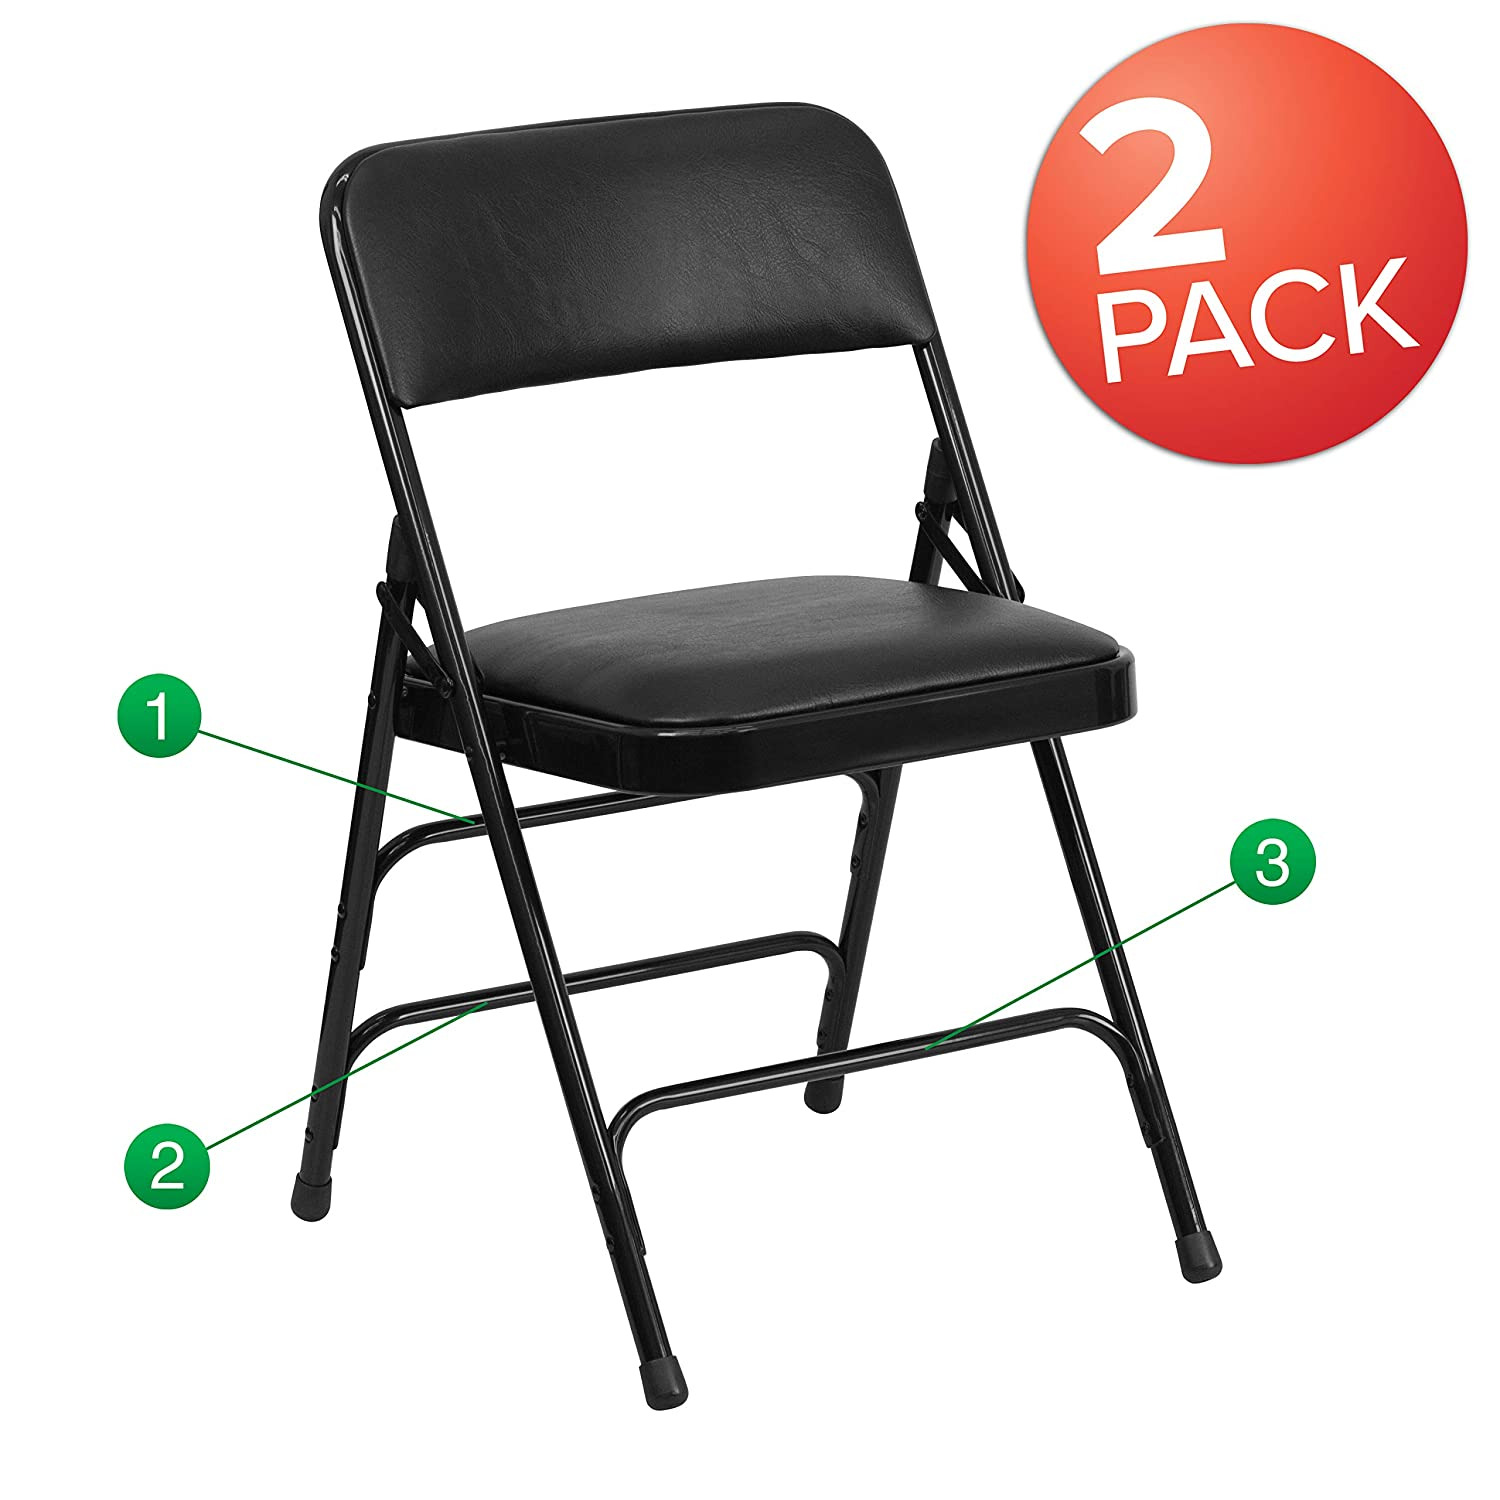 Flash Furniture HERCULES Series Metal Folding Chairs with Padded Seats Set of 2 Black Metal Folding Chairs